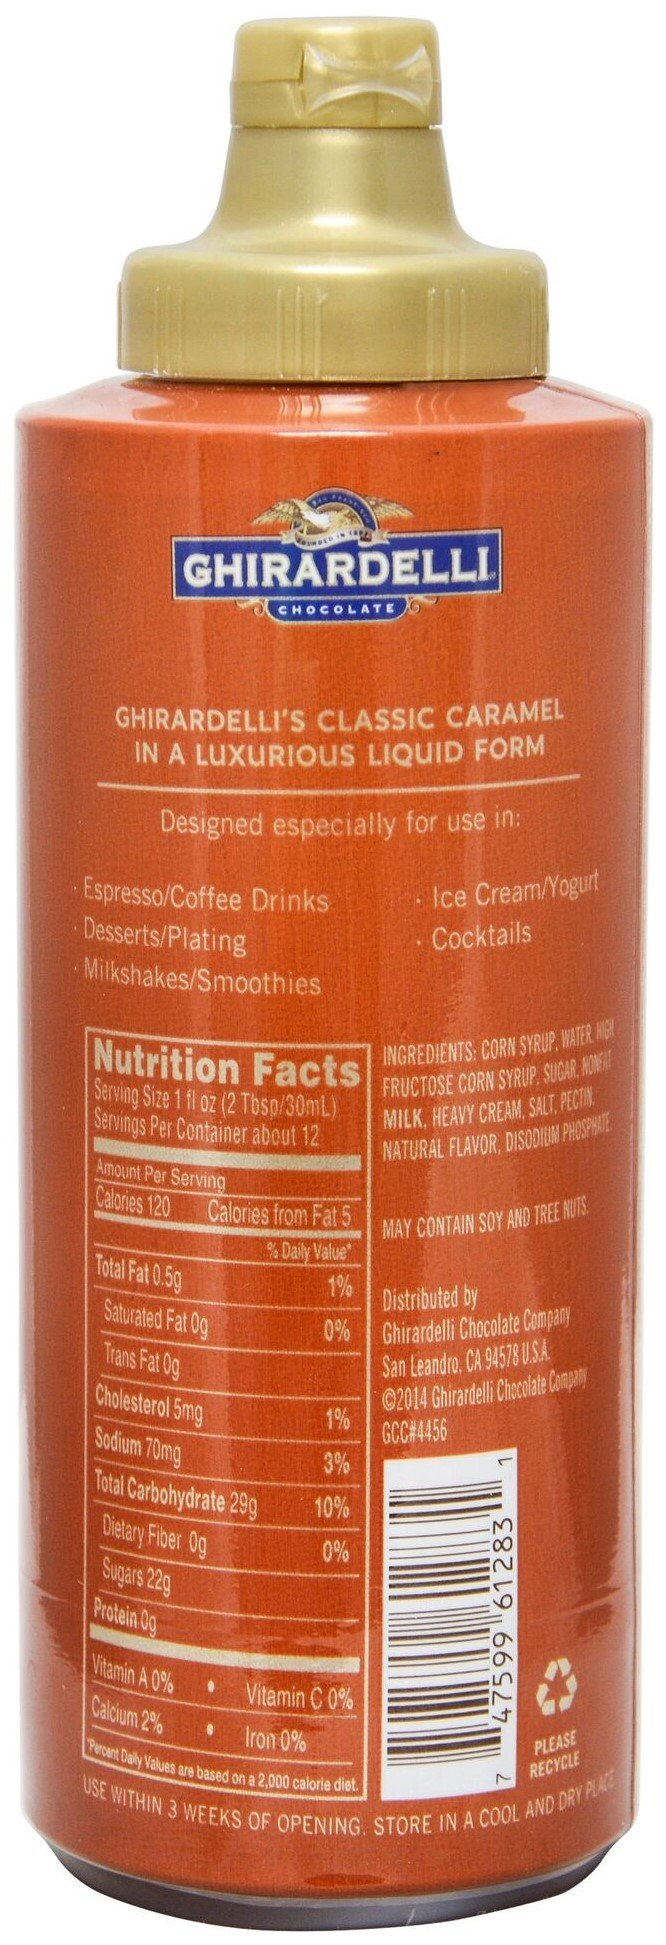 Ghirardelli - 16 Ounce Black Label, 16 Ounce Vanilla, 17 Ounce Caramel, 17 Ounce Sea Salt Caramel Flavored Sauce (Set of 4) - with Limited Edition Measuring Spoon by Ghirardelli (Image #5)